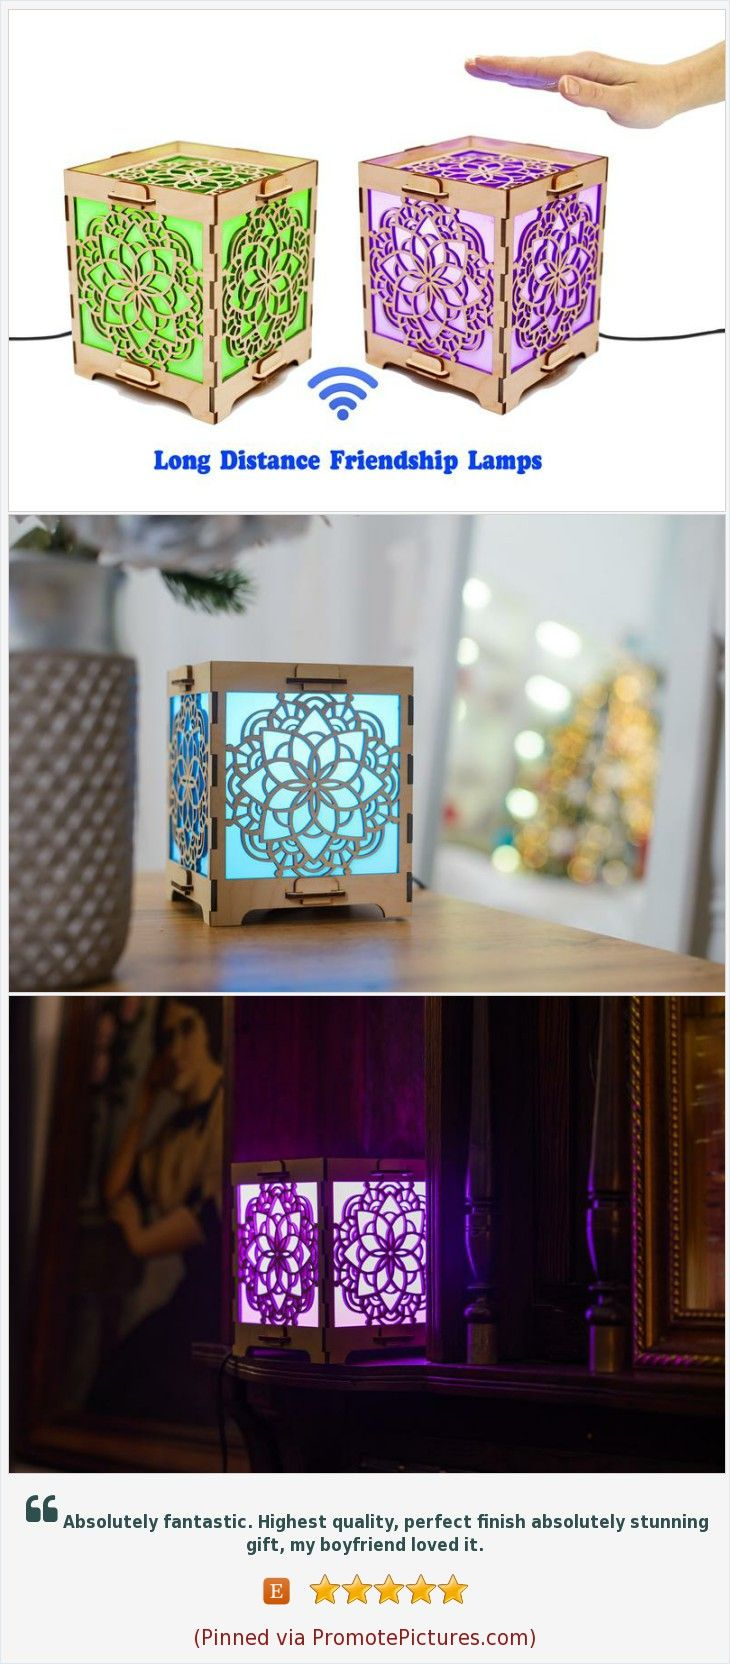 Long Distance Friendship Lamp Set Of Two Etsy In 2020 Friendship Lamps Presents For Best Friends Moving Away Gifts